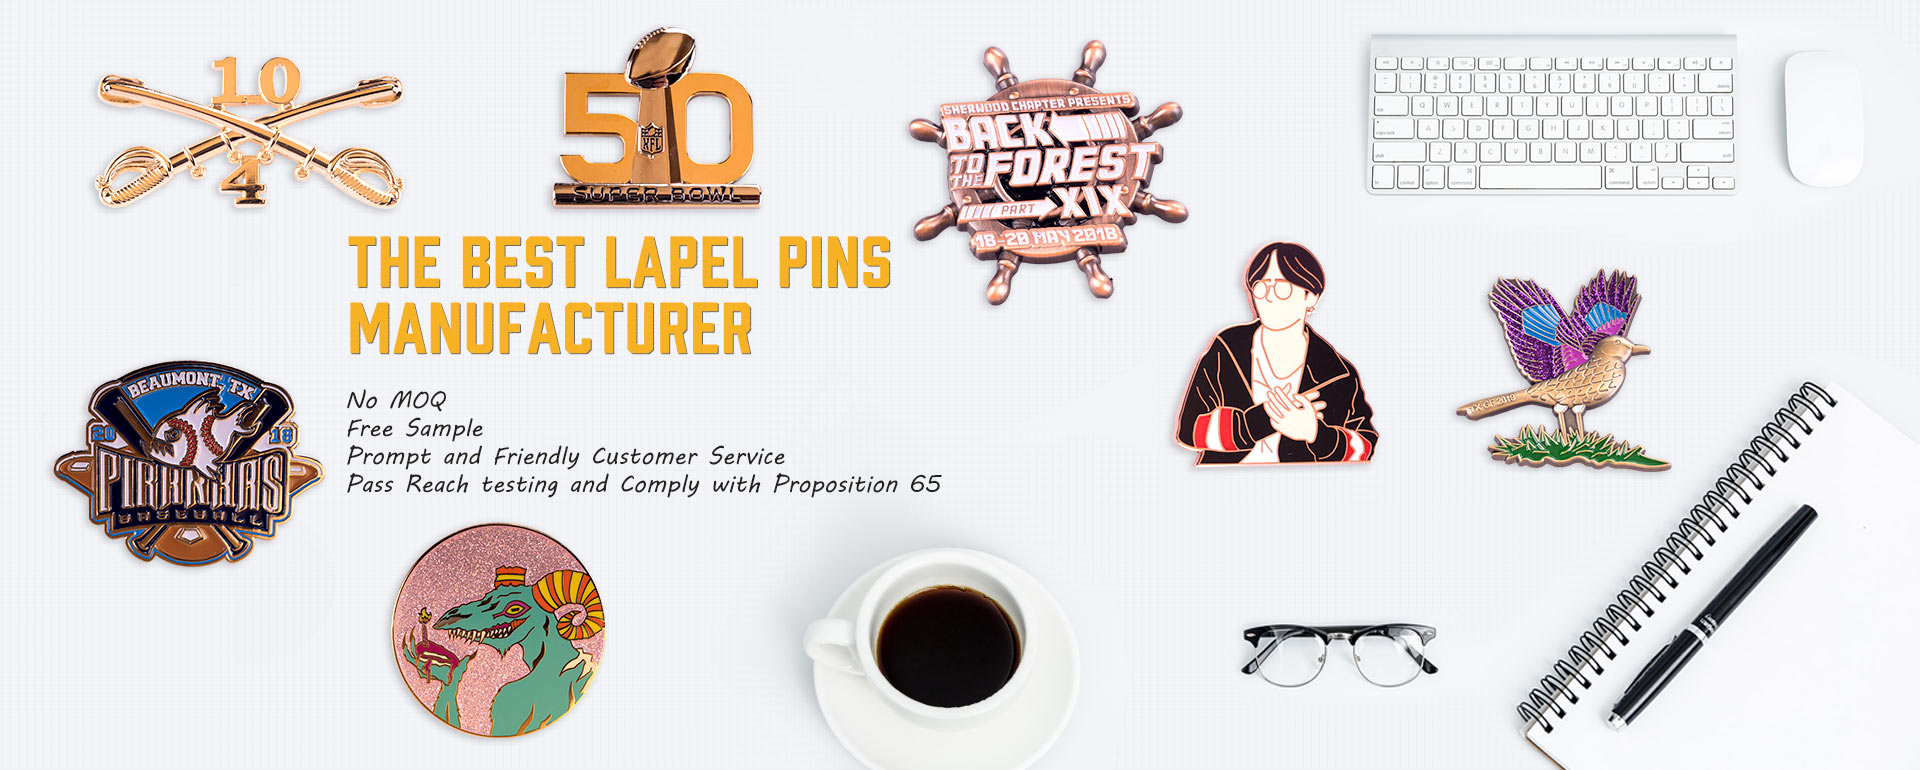 The Best Lapel Pins Manufacturer